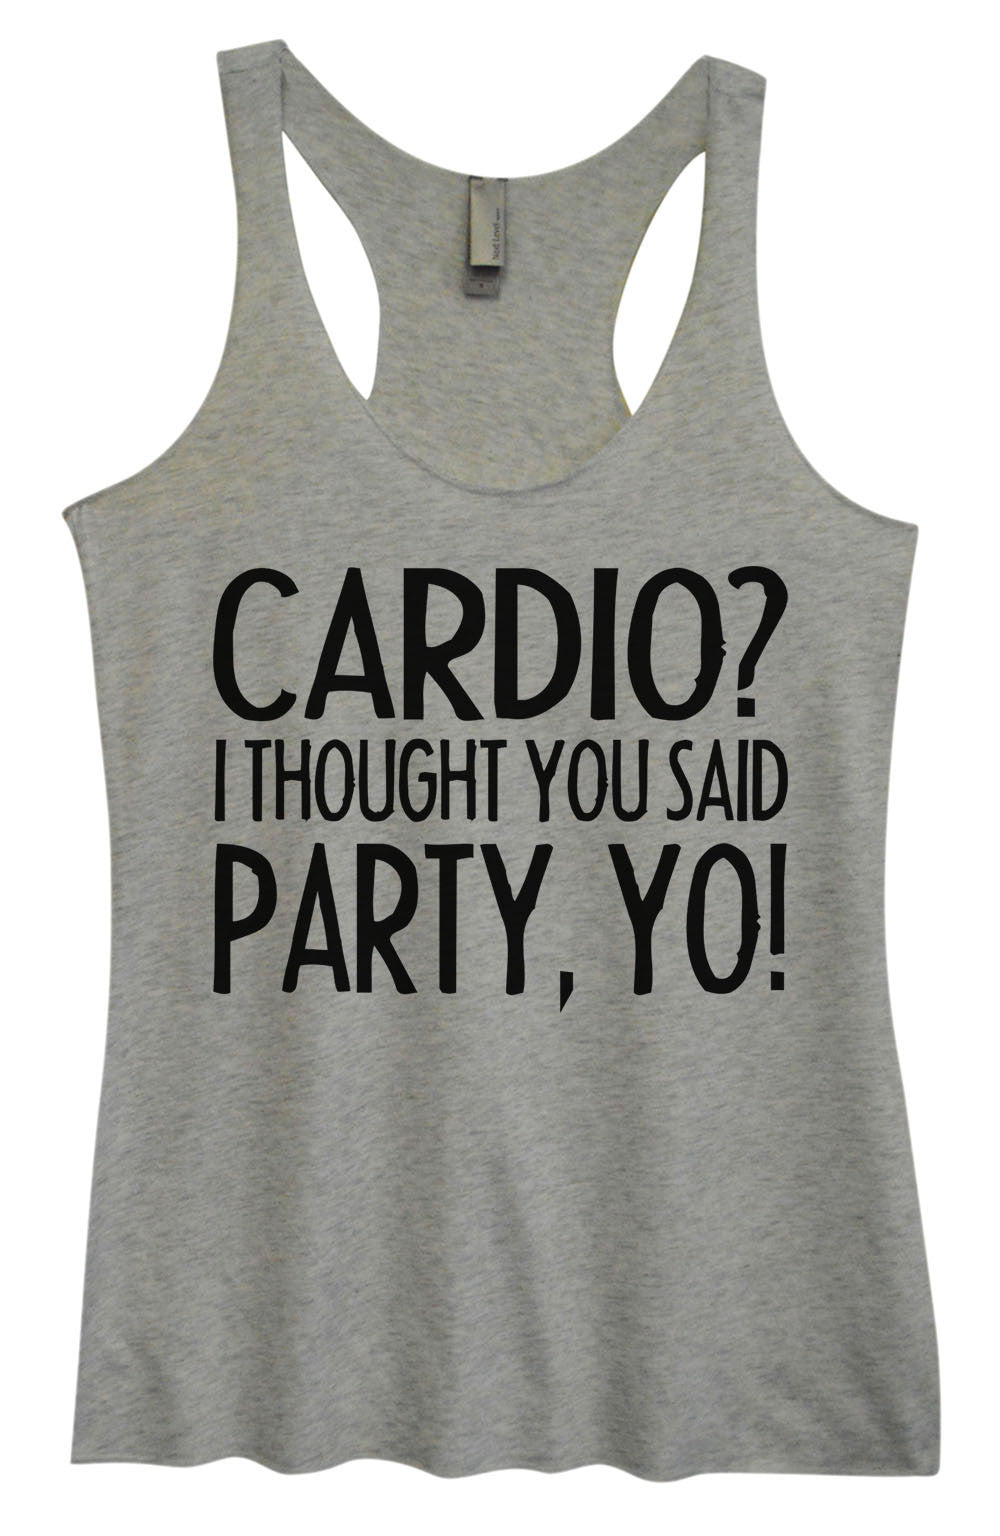 Womens Fashion Triblend Tank Top - Cardio? I Thought You Said Party, Yo! - Tri-932 - Funny Shirts Tank Tops Burnouts and Triblends  - 2